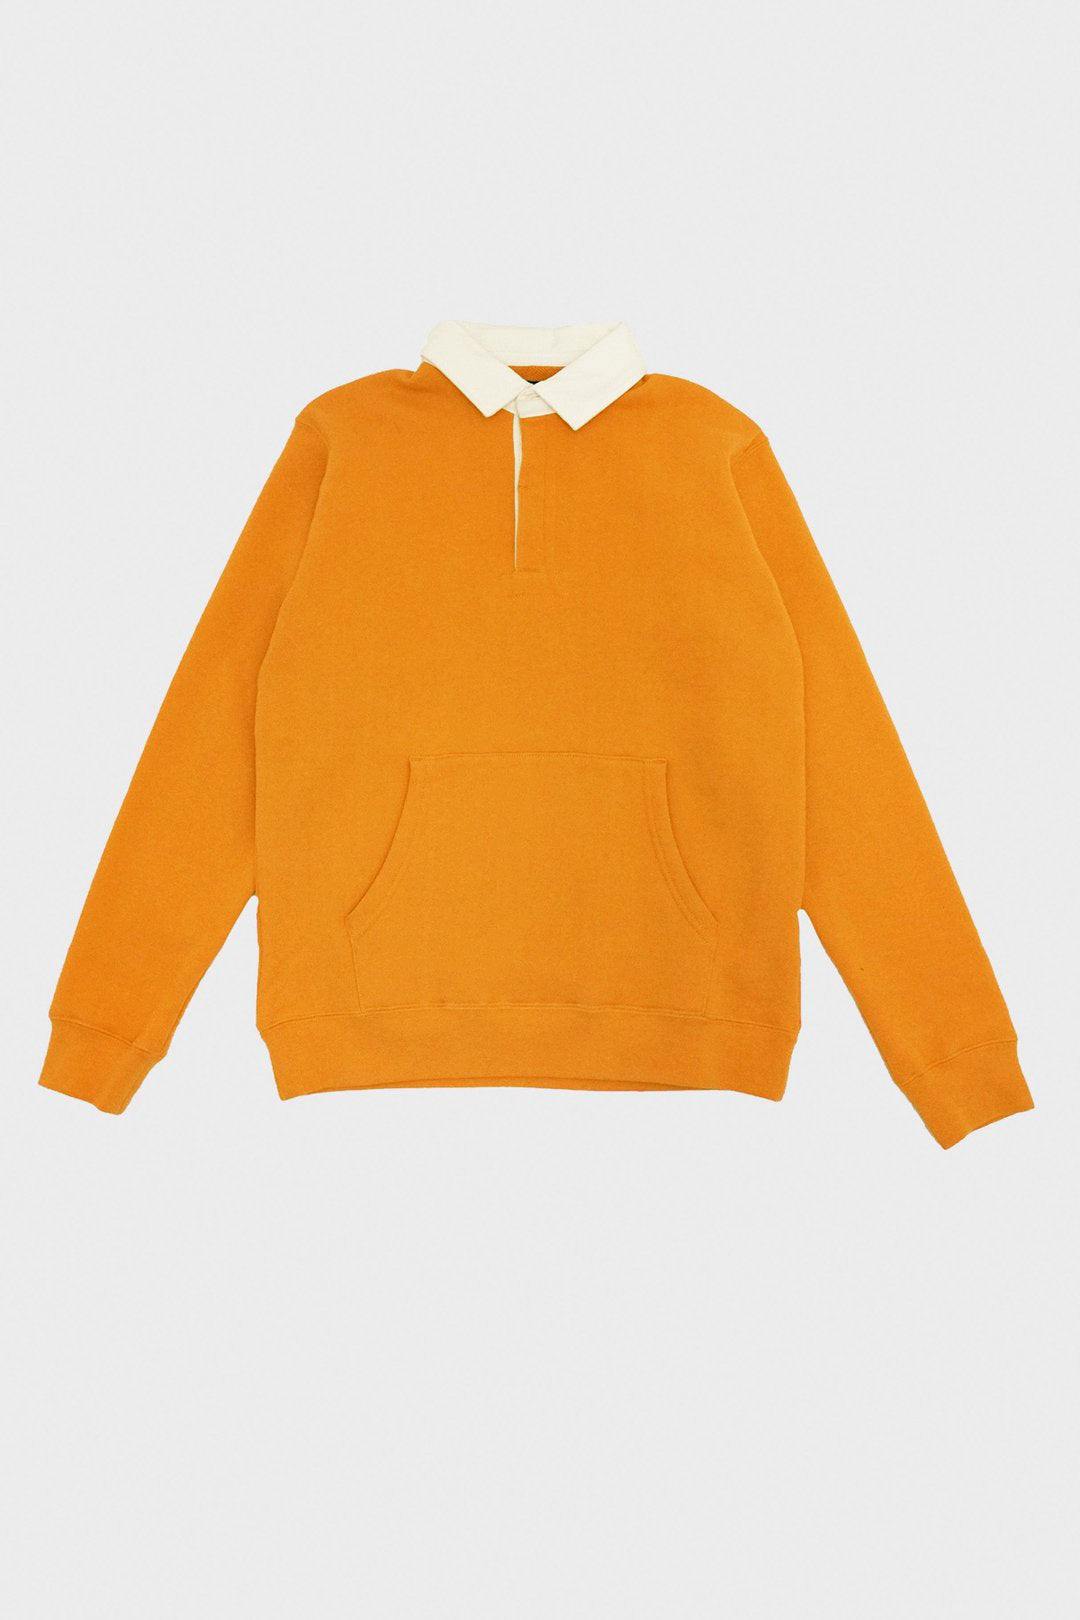 Beams Plus - Rugger Shirt Cotton Fleece - Yellow - Canoe Club